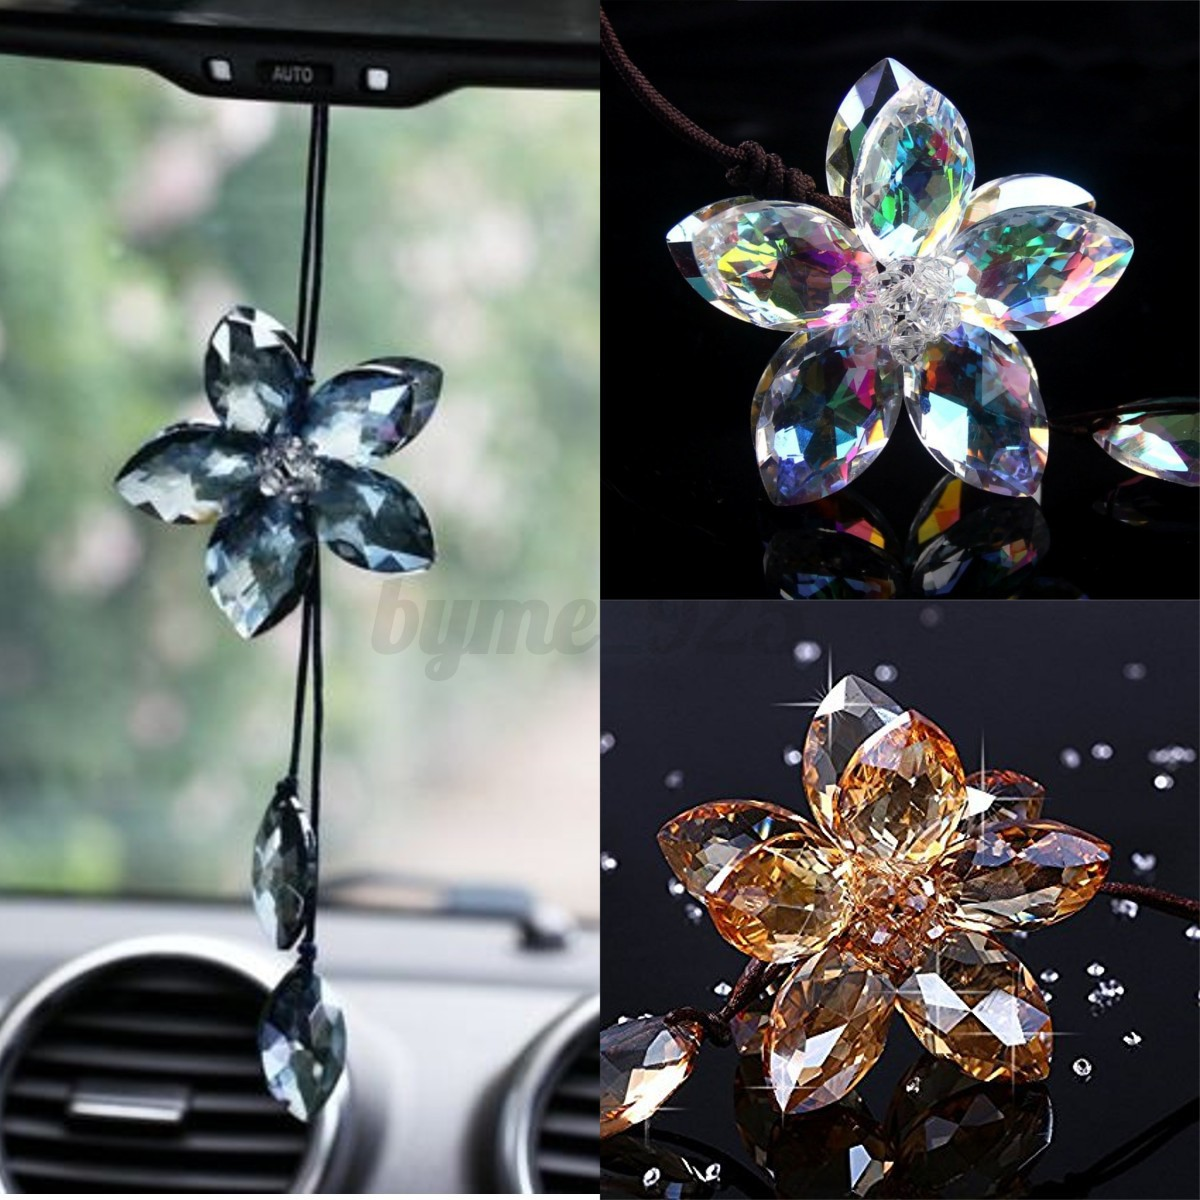 auto car interior rear view mirror pendant crystal decor hanging ornament 35cm ebay. Black Bedroom Furniture Sets. Home Design Ideas